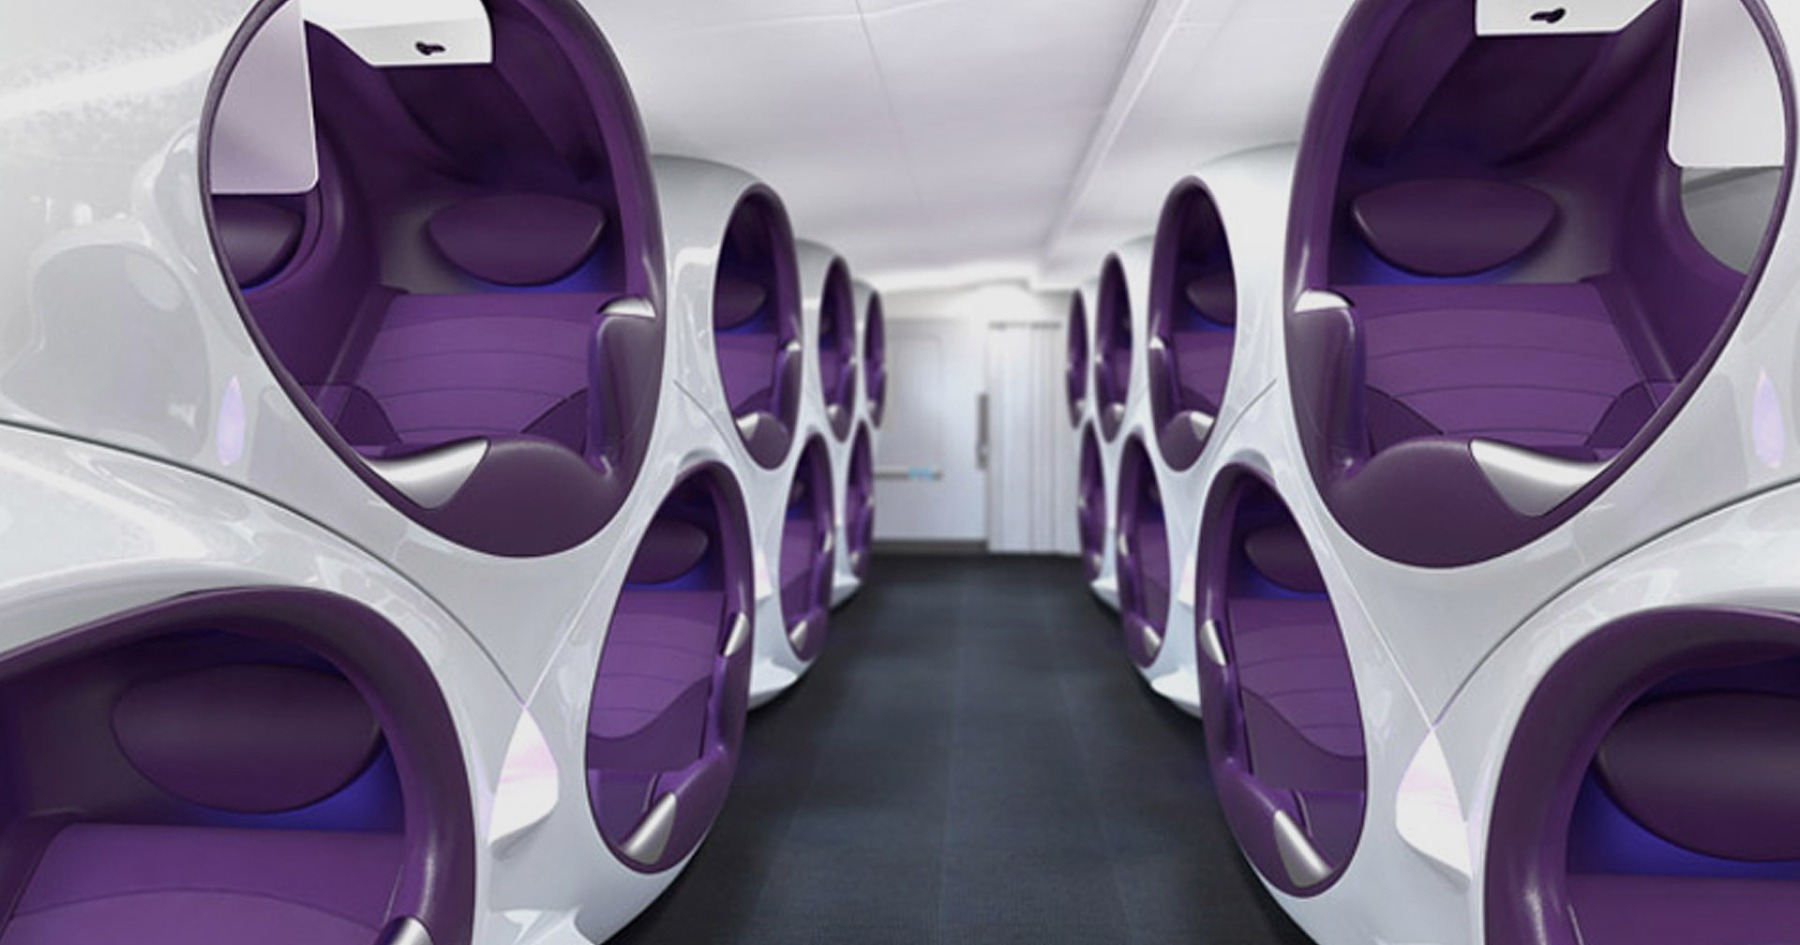 Airline Seating: It's About to Get Better